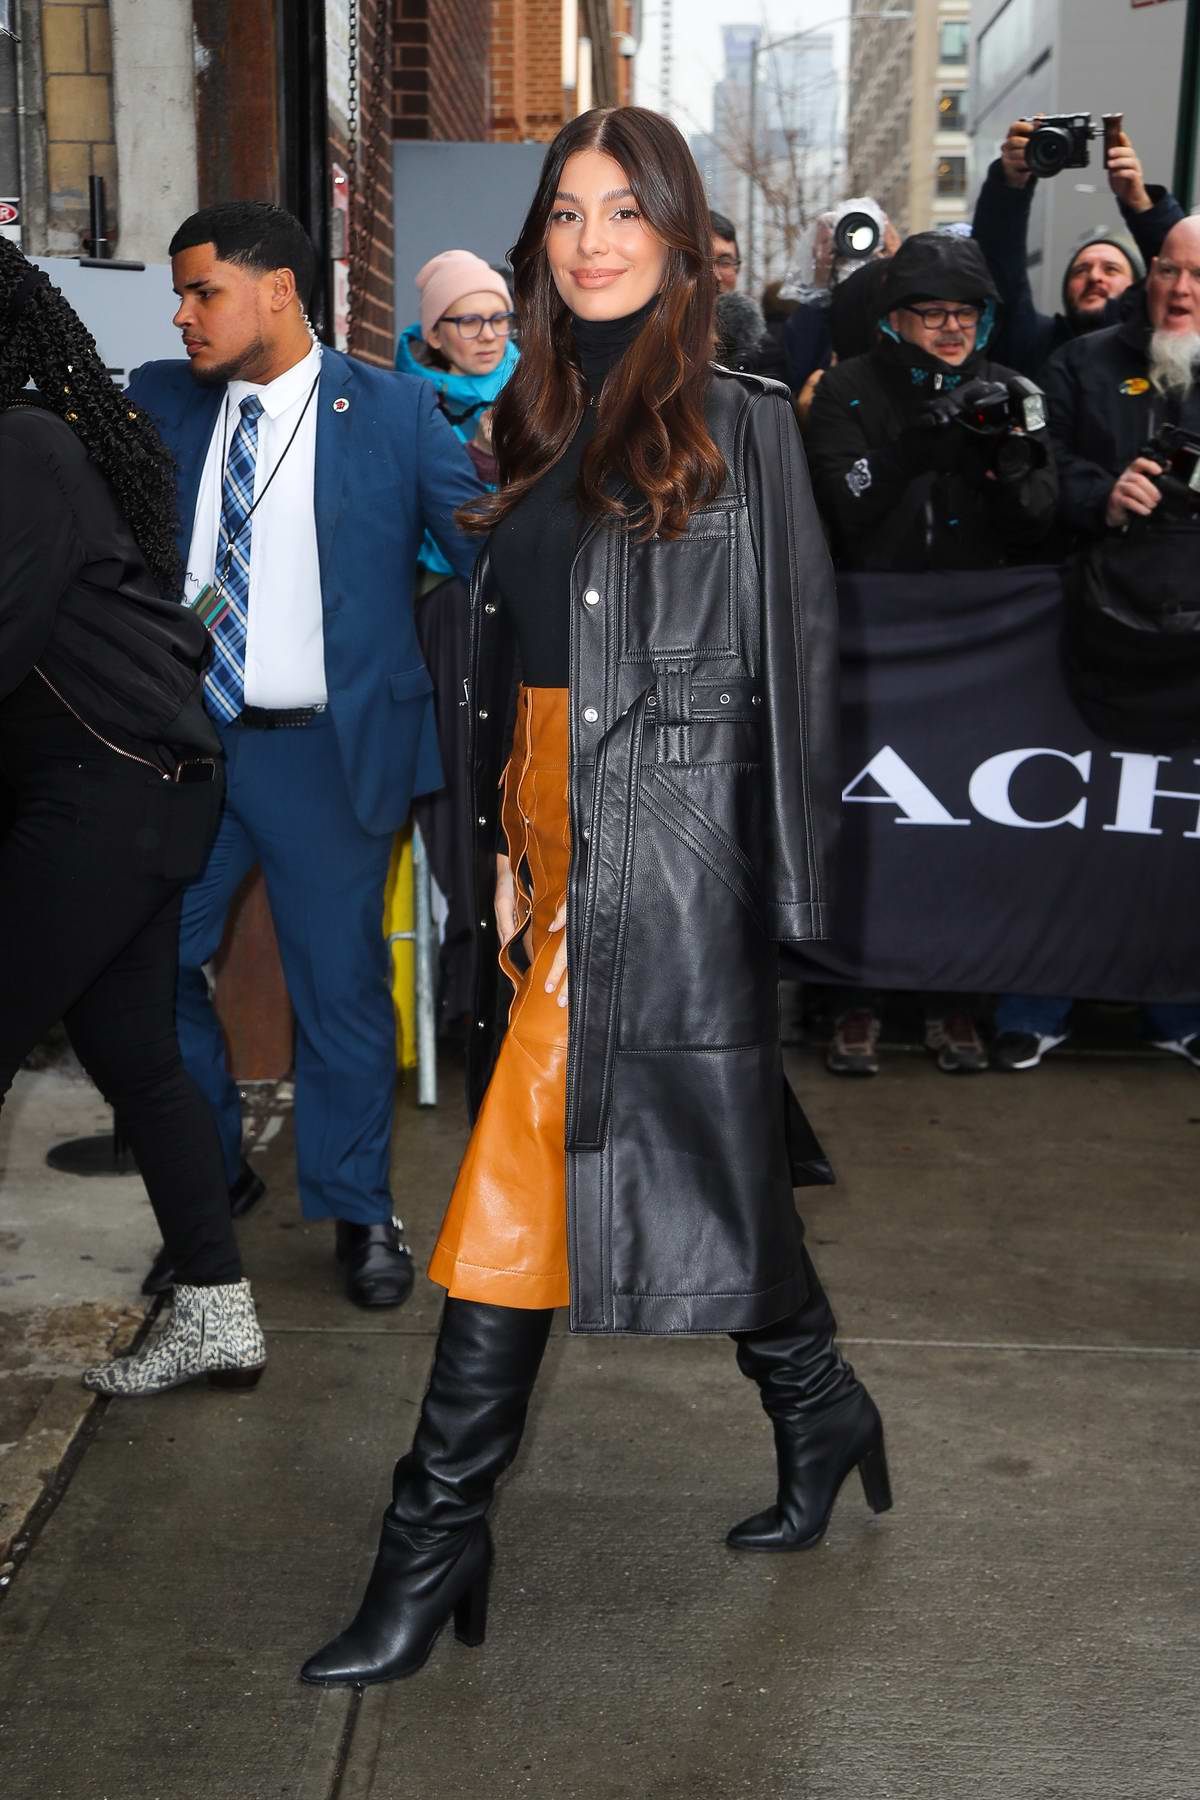 Camila Morrone attends the Coach Fashion Show Fall 2020 in New York City